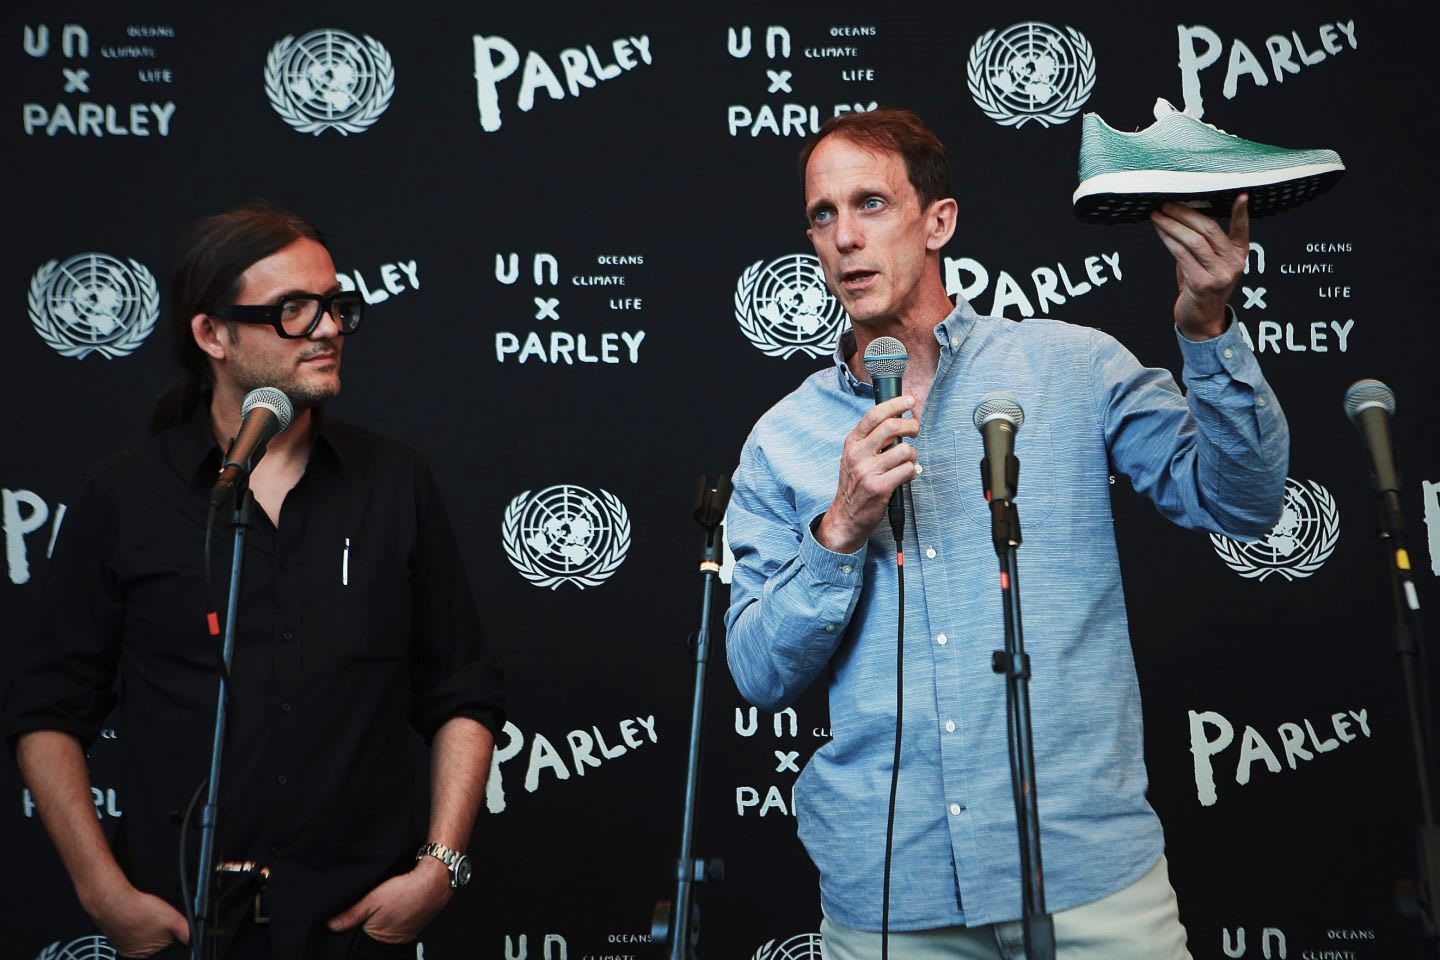 Man wearing blue shirt holding up a sneaker while giving a speech on stage, Eric Liedtke, Cyrill Gutsch, CEO, founder, Parley for the Oceans, United Nations, sustainability